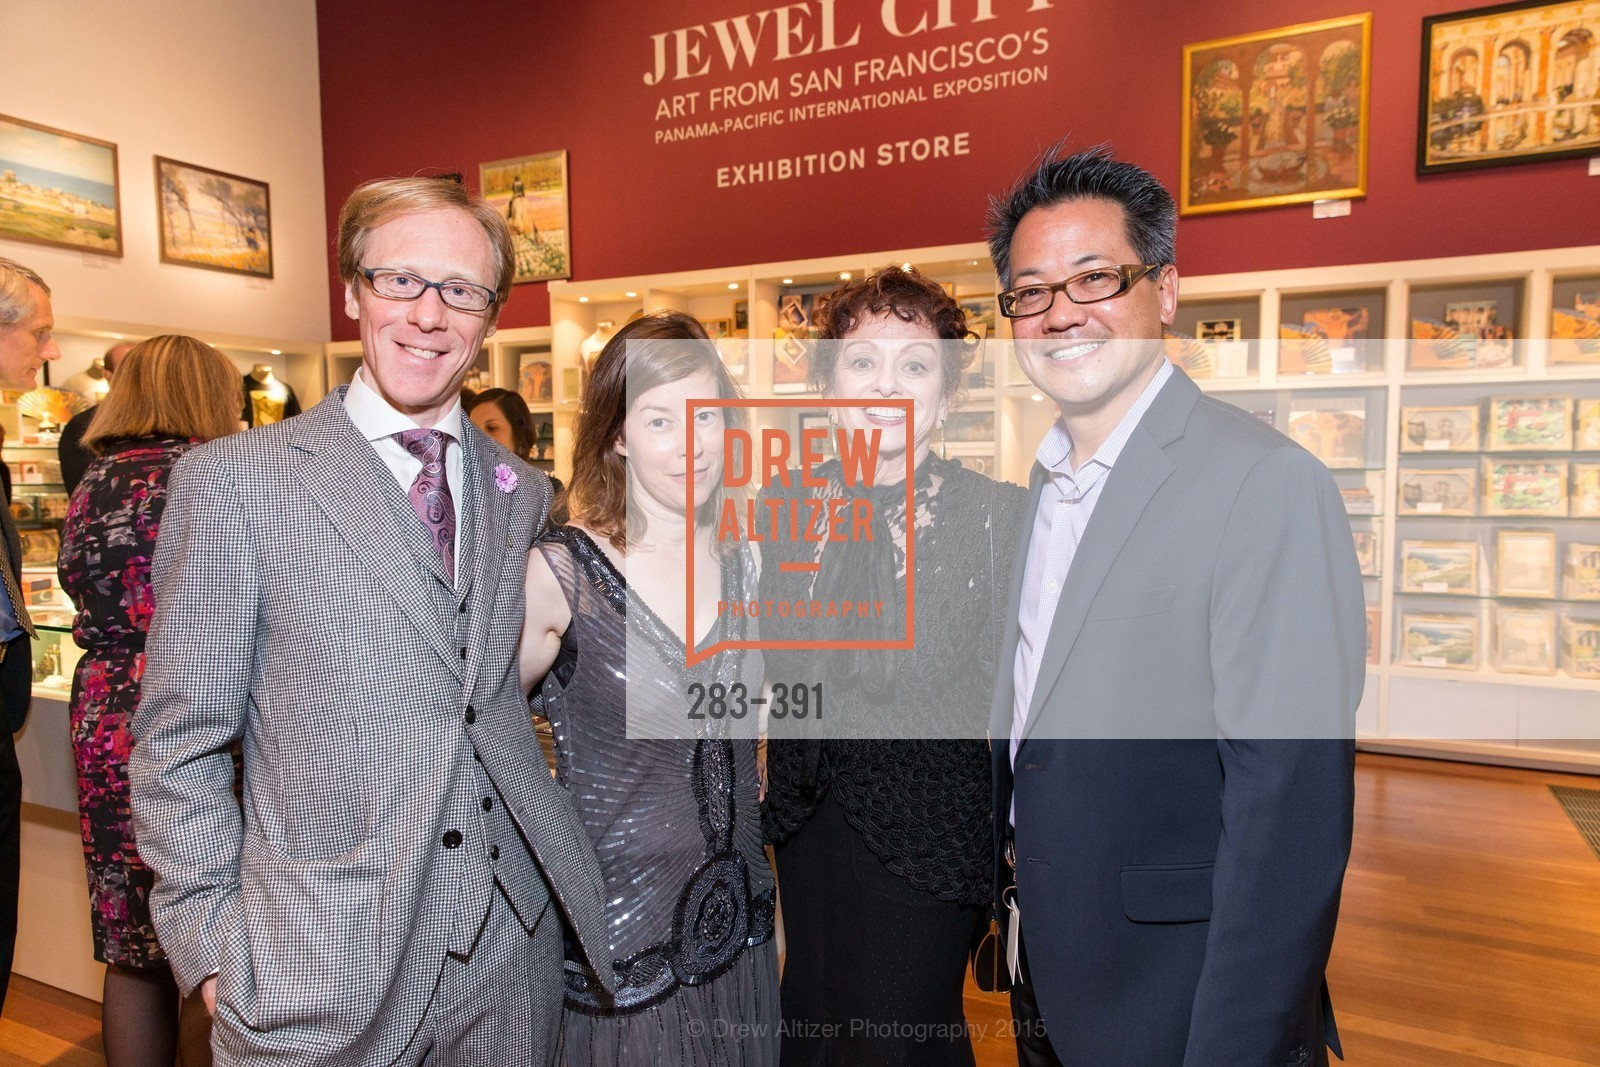 Jonathan Ravel, Leslie Dutcher, Renee Dreyfus, Steuart Hata, Jewel City: Art From San Francisco's Panama-Pacific International Exposition Donor Opening Reception, de Young Museum, October 15th, 2015,Drew Altizer, Drew Altizer Photography, full-service event agency, private events, San Francisco photographer, photographer California